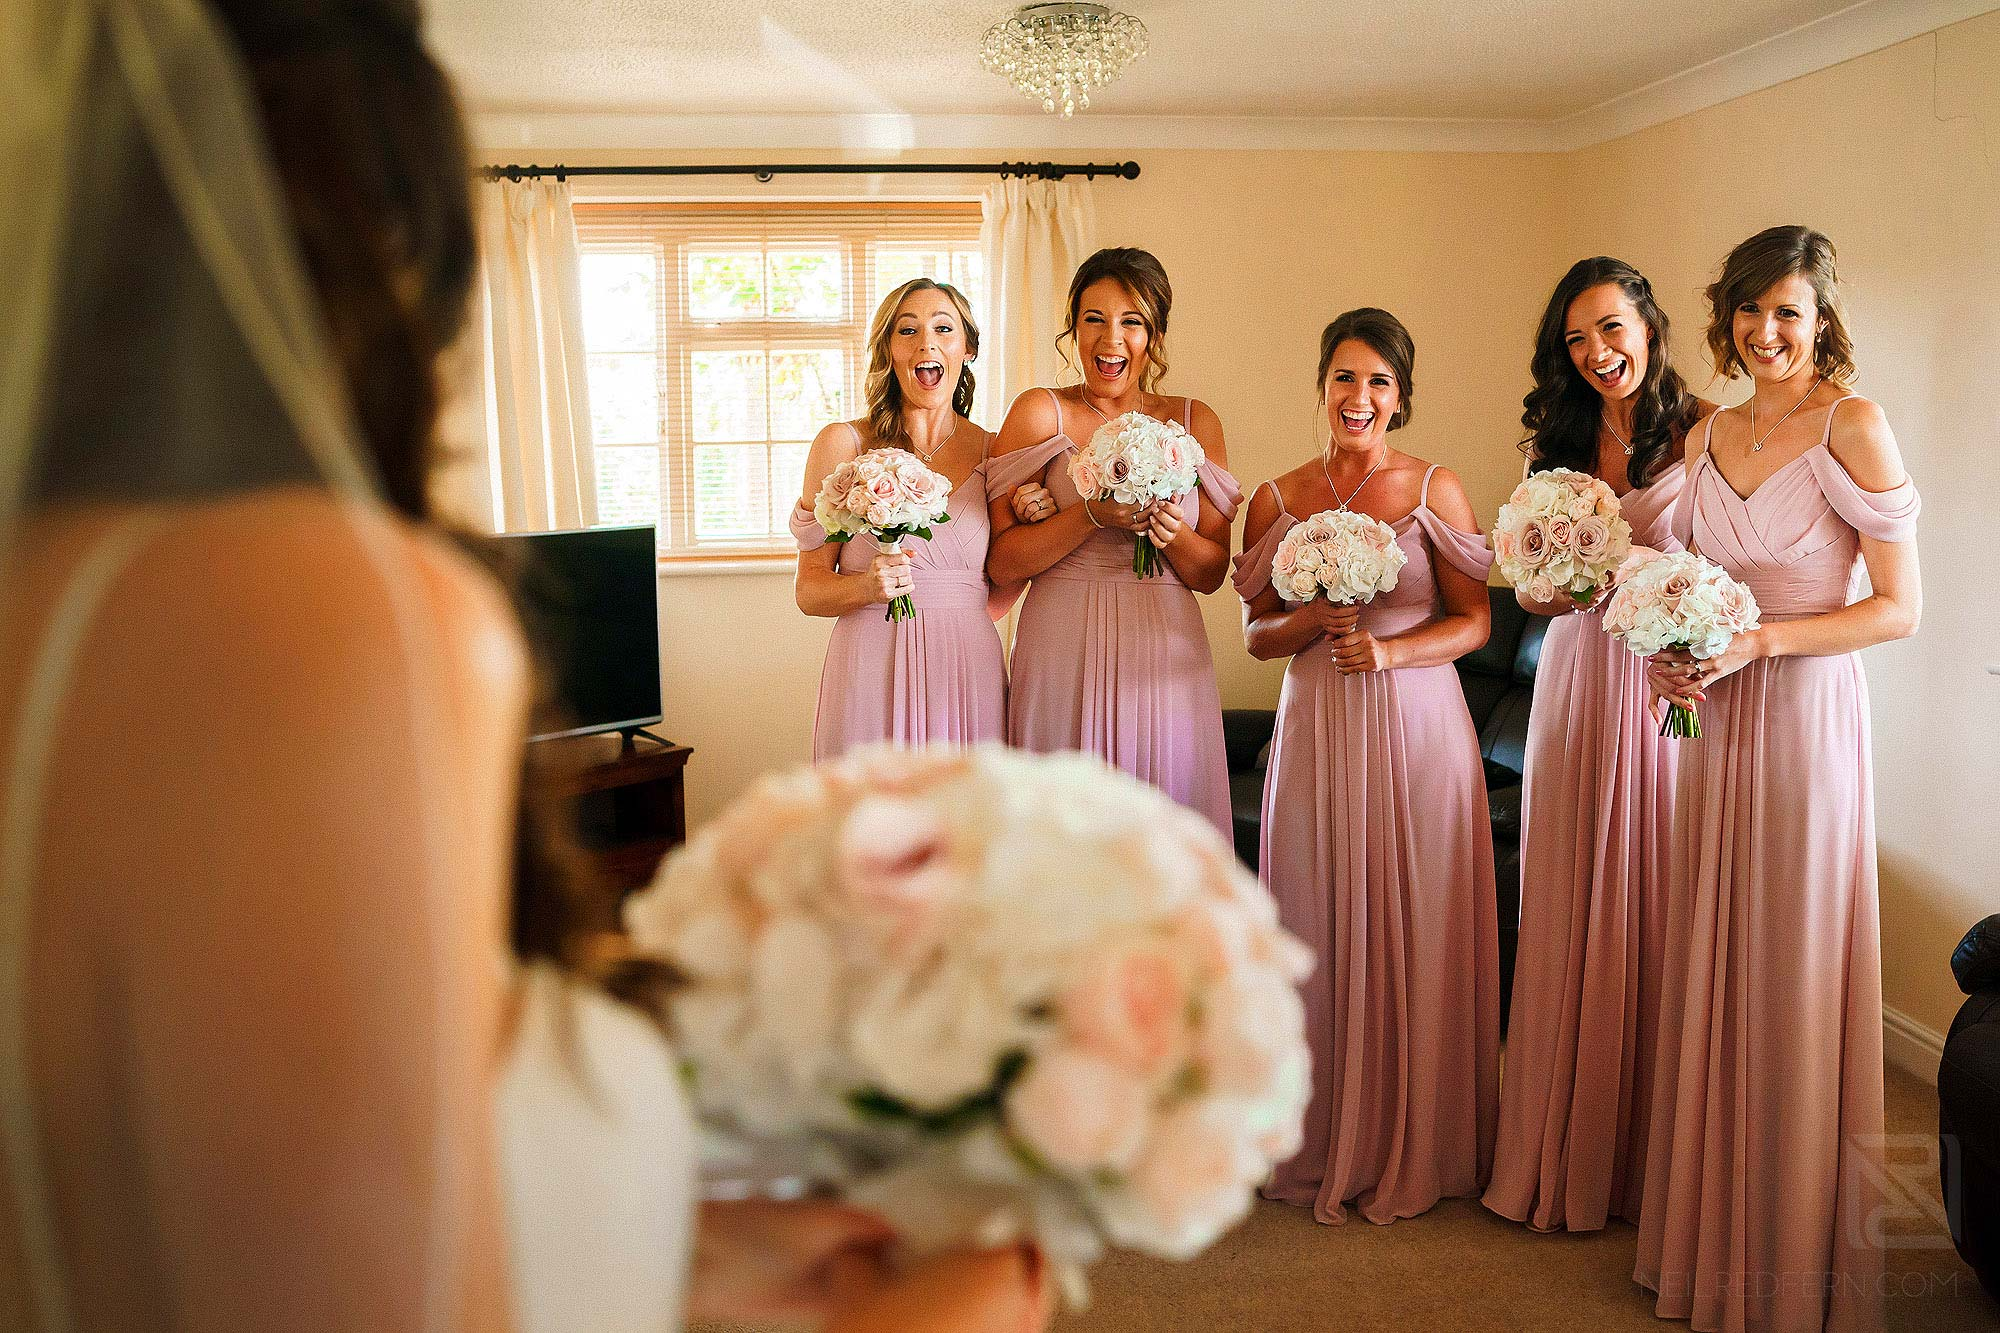 bridesmaids seeing bride in wedding dress for first time